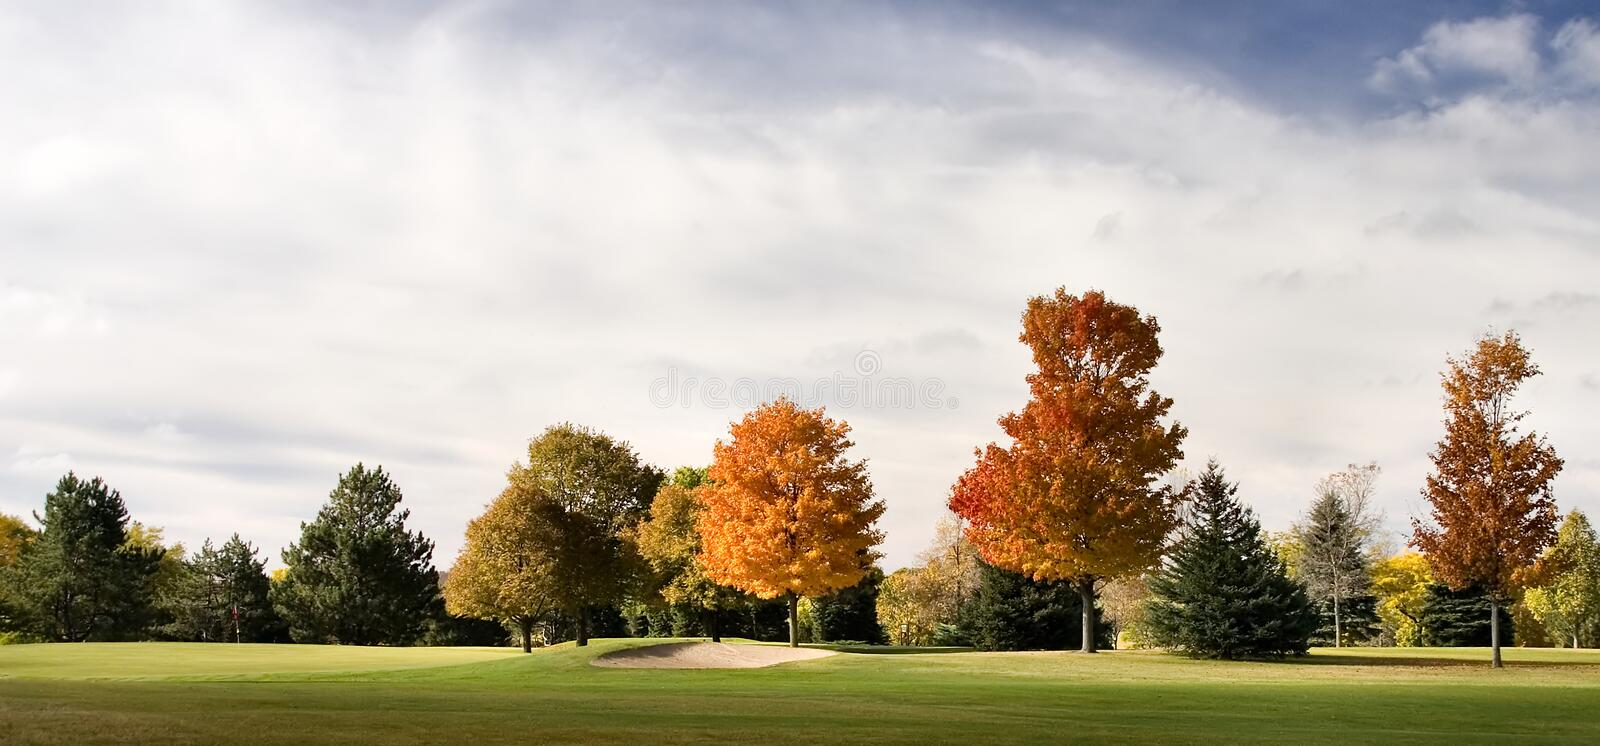 Download Golf Course Bunker stock image. Image of bunker, peaceful - 8661221